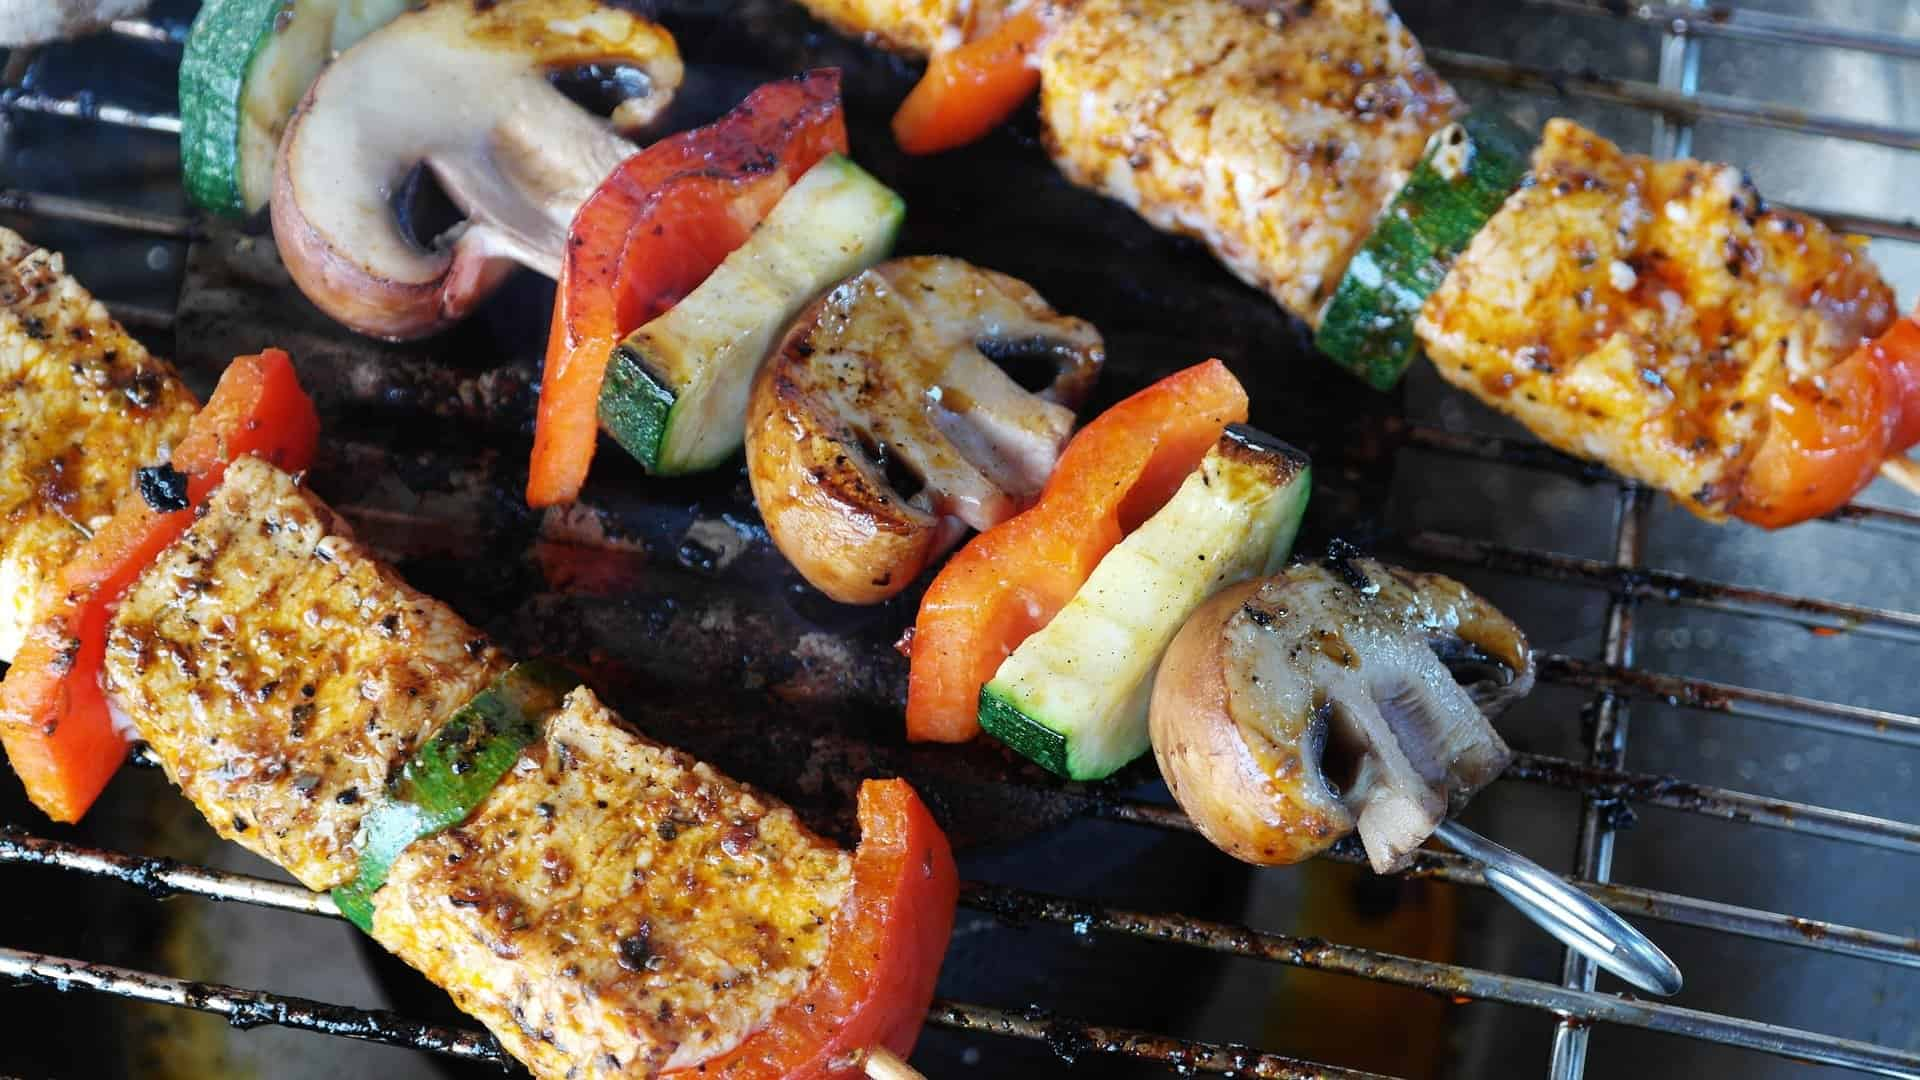 An image of a meat and vegetable skewer.